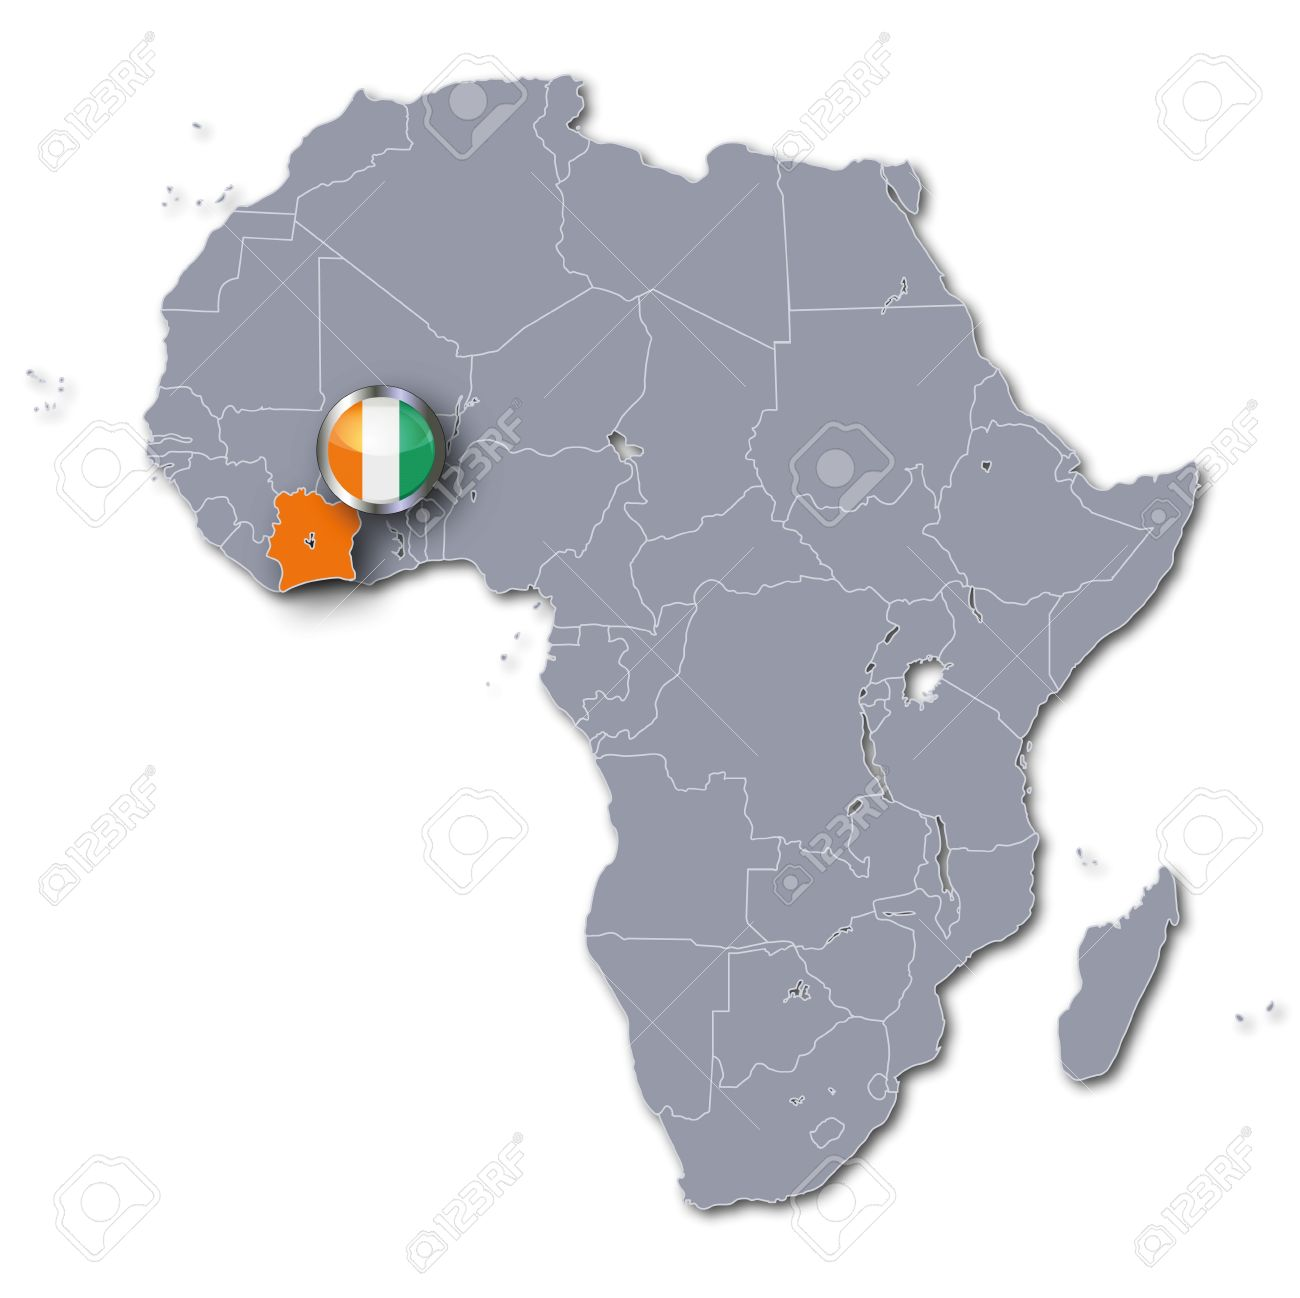 Button Africa Map With Ivory Coast Stock Photo Picture And - Ivory coast map of africa